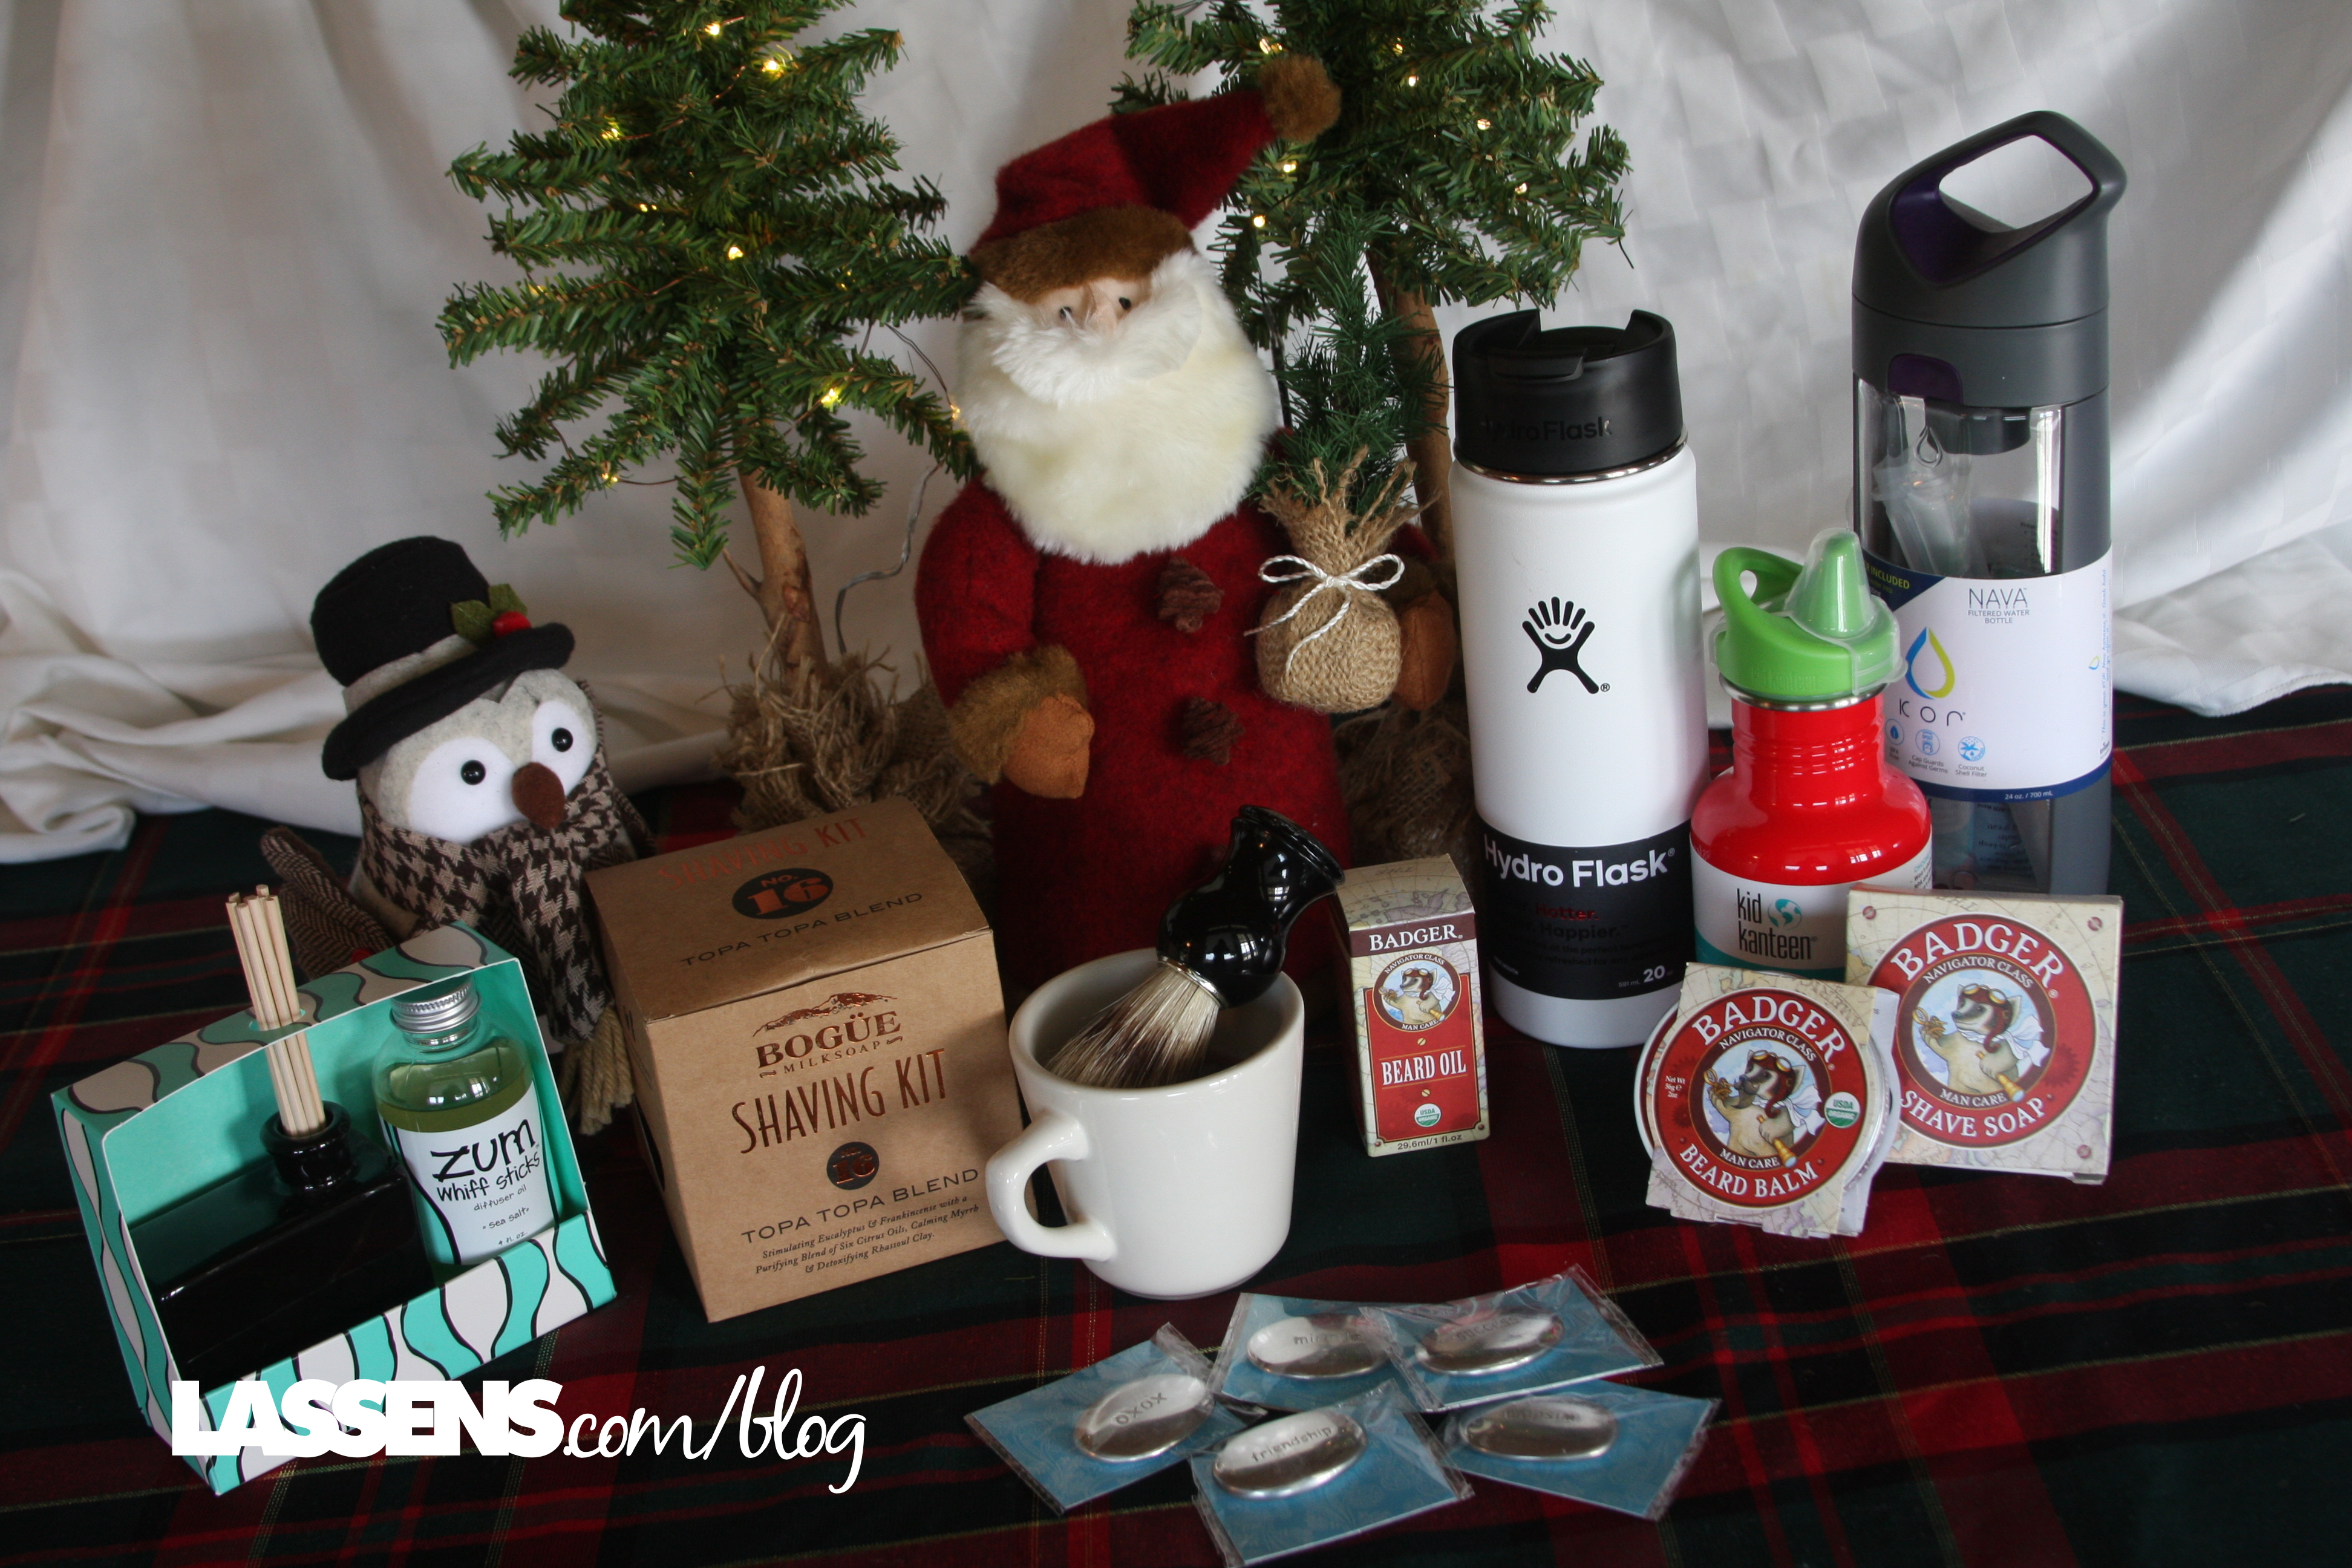 Gifts+for+men, Gift+ideas, stocking+stuffers, eco+friendly+gifts